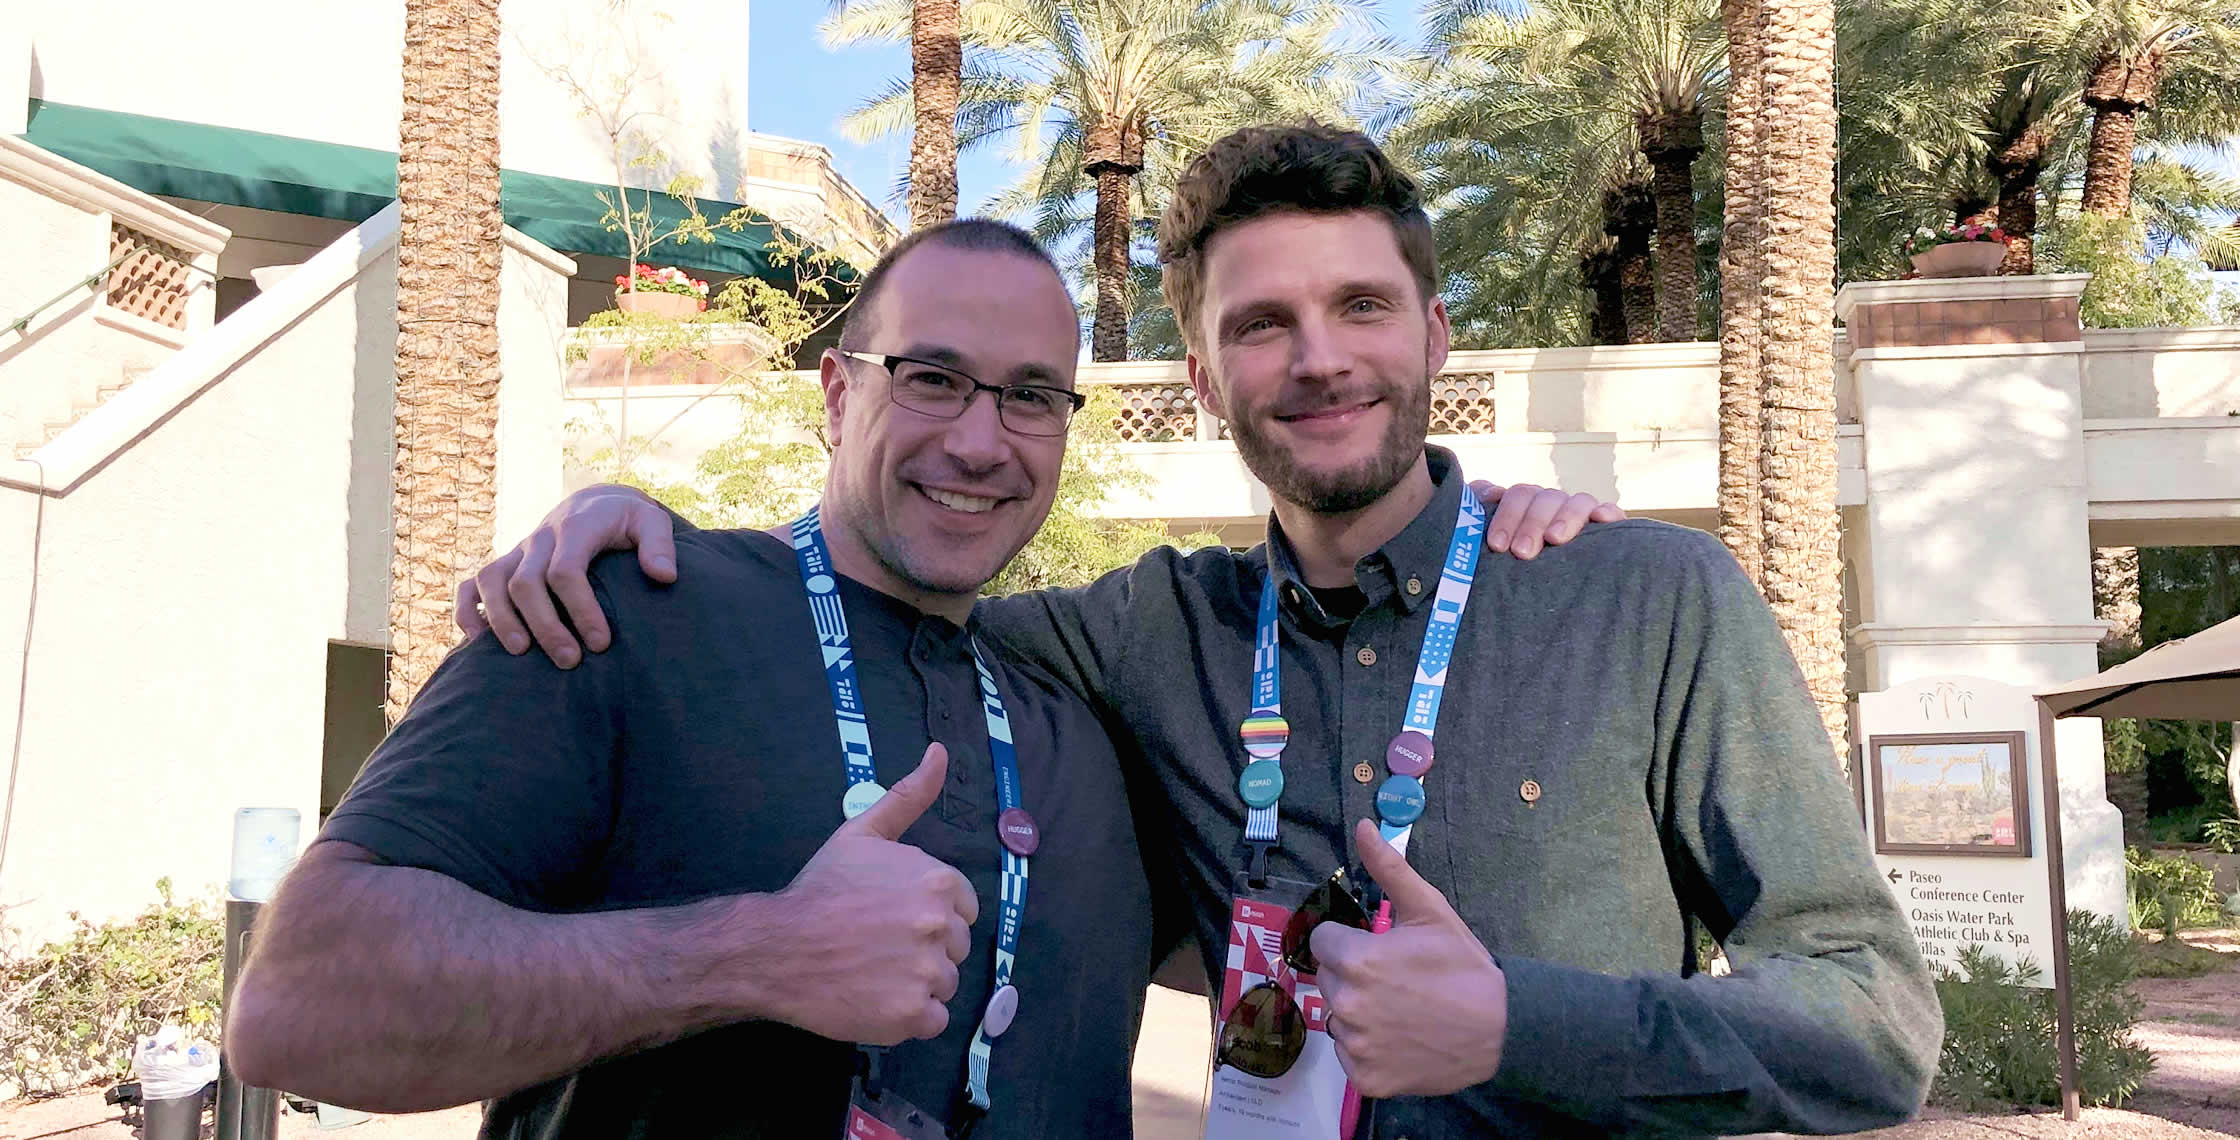 Ben Nadel at InVision In Real Life (IRL) 2019 (Phoenix, AZ) with: Jacob Holloway